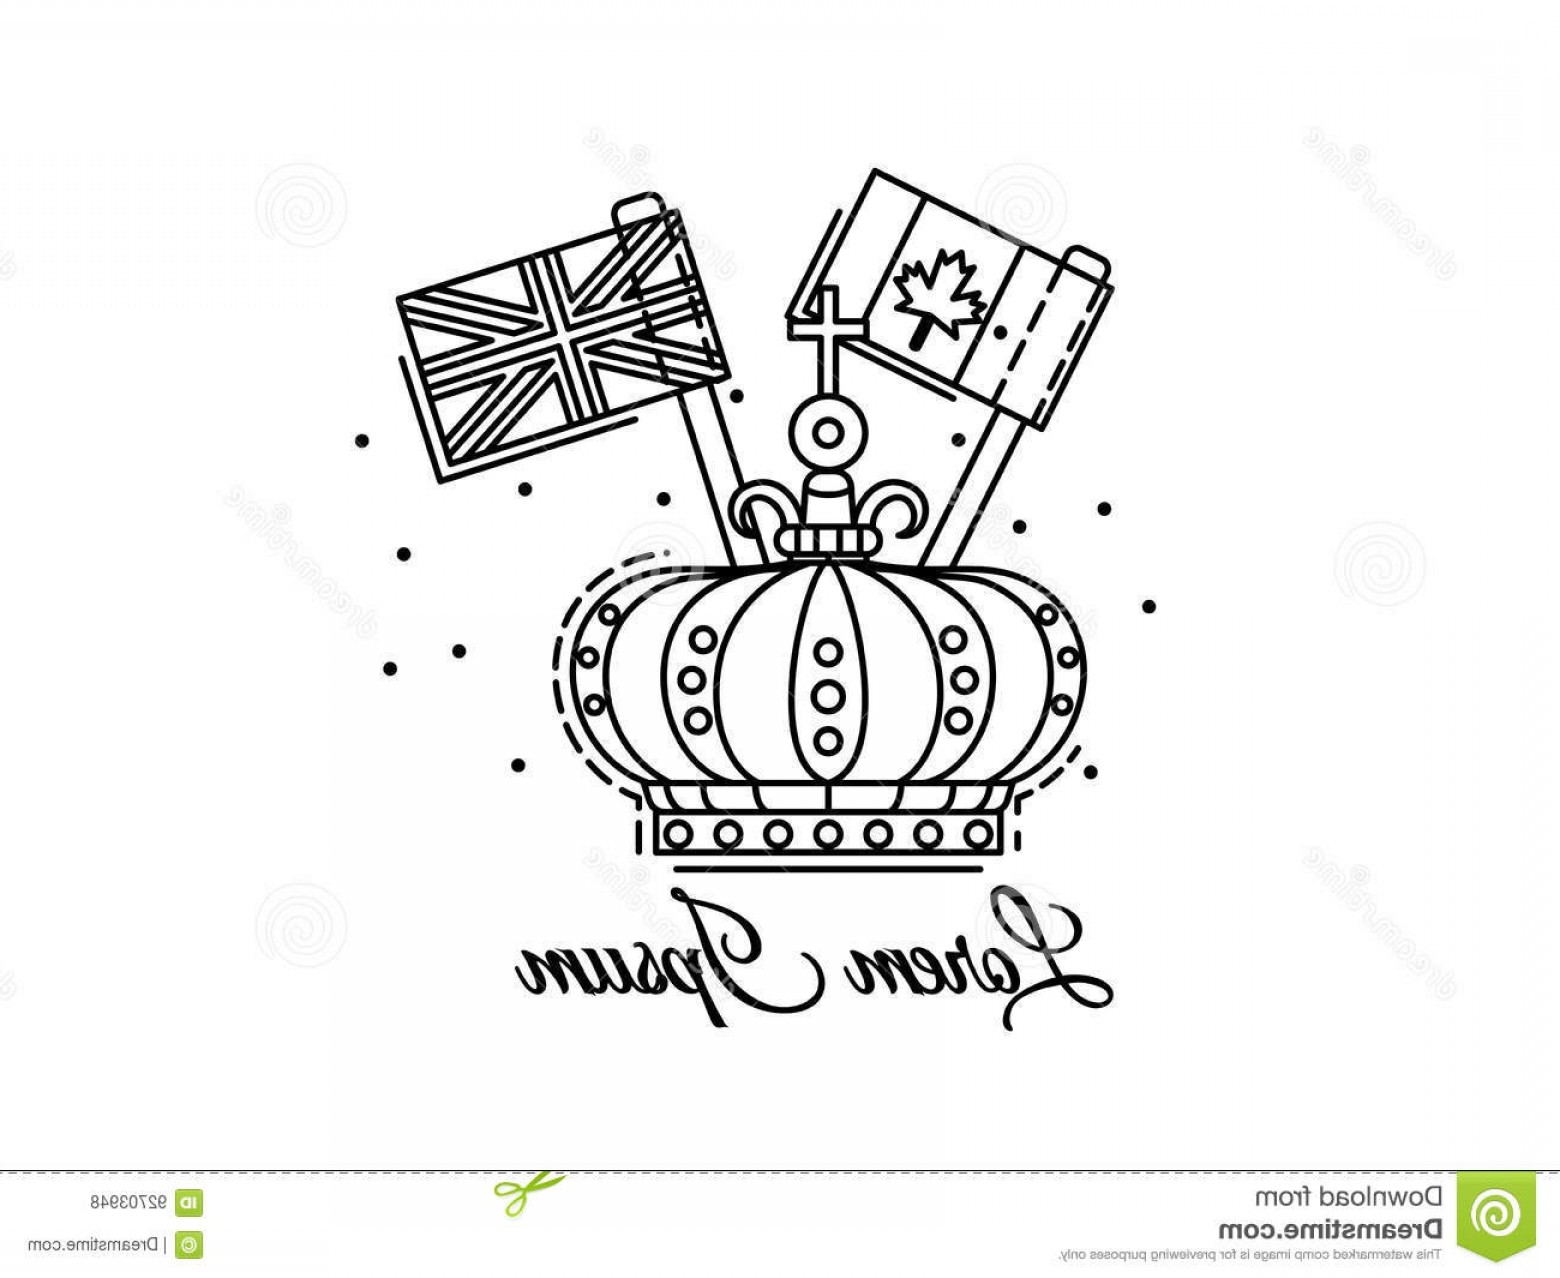 Crown White Outline Vector: Stock Illustration Crown Outline Flags Canada Uk Black White Vector Logo Illustration Can Be Used Colouring Book Image